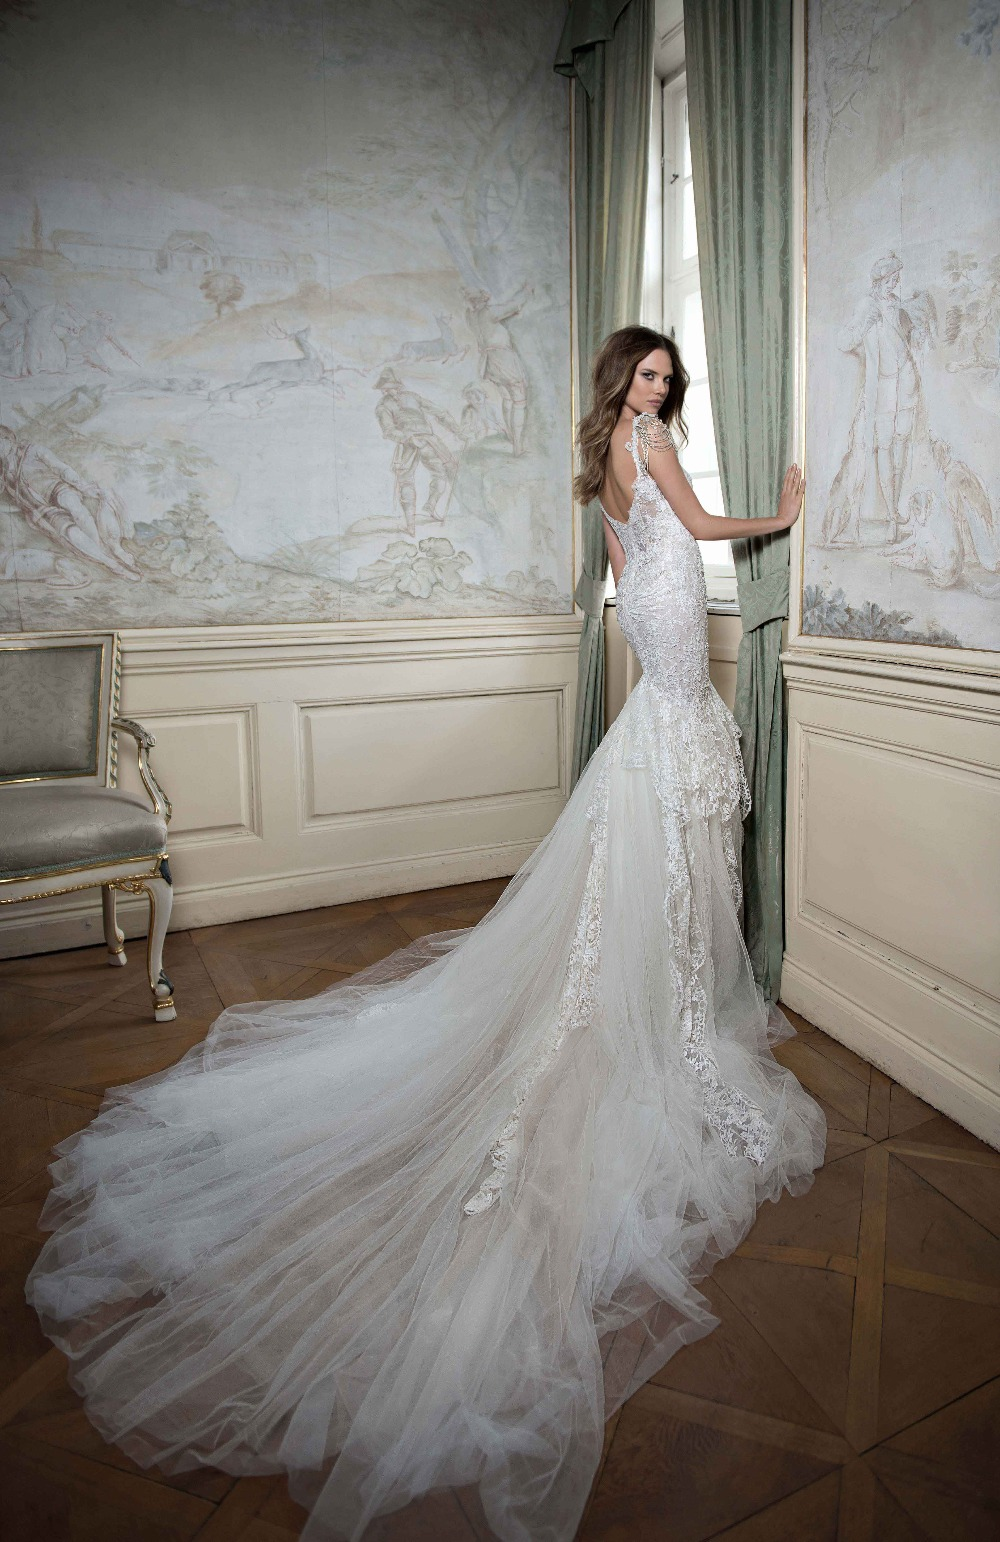 FBB-08 New Design Full Length Bridal Gown Sweetheart Hand-beaded Embroidere Dramatic Ruffle Low Back Lace Wedding Dress